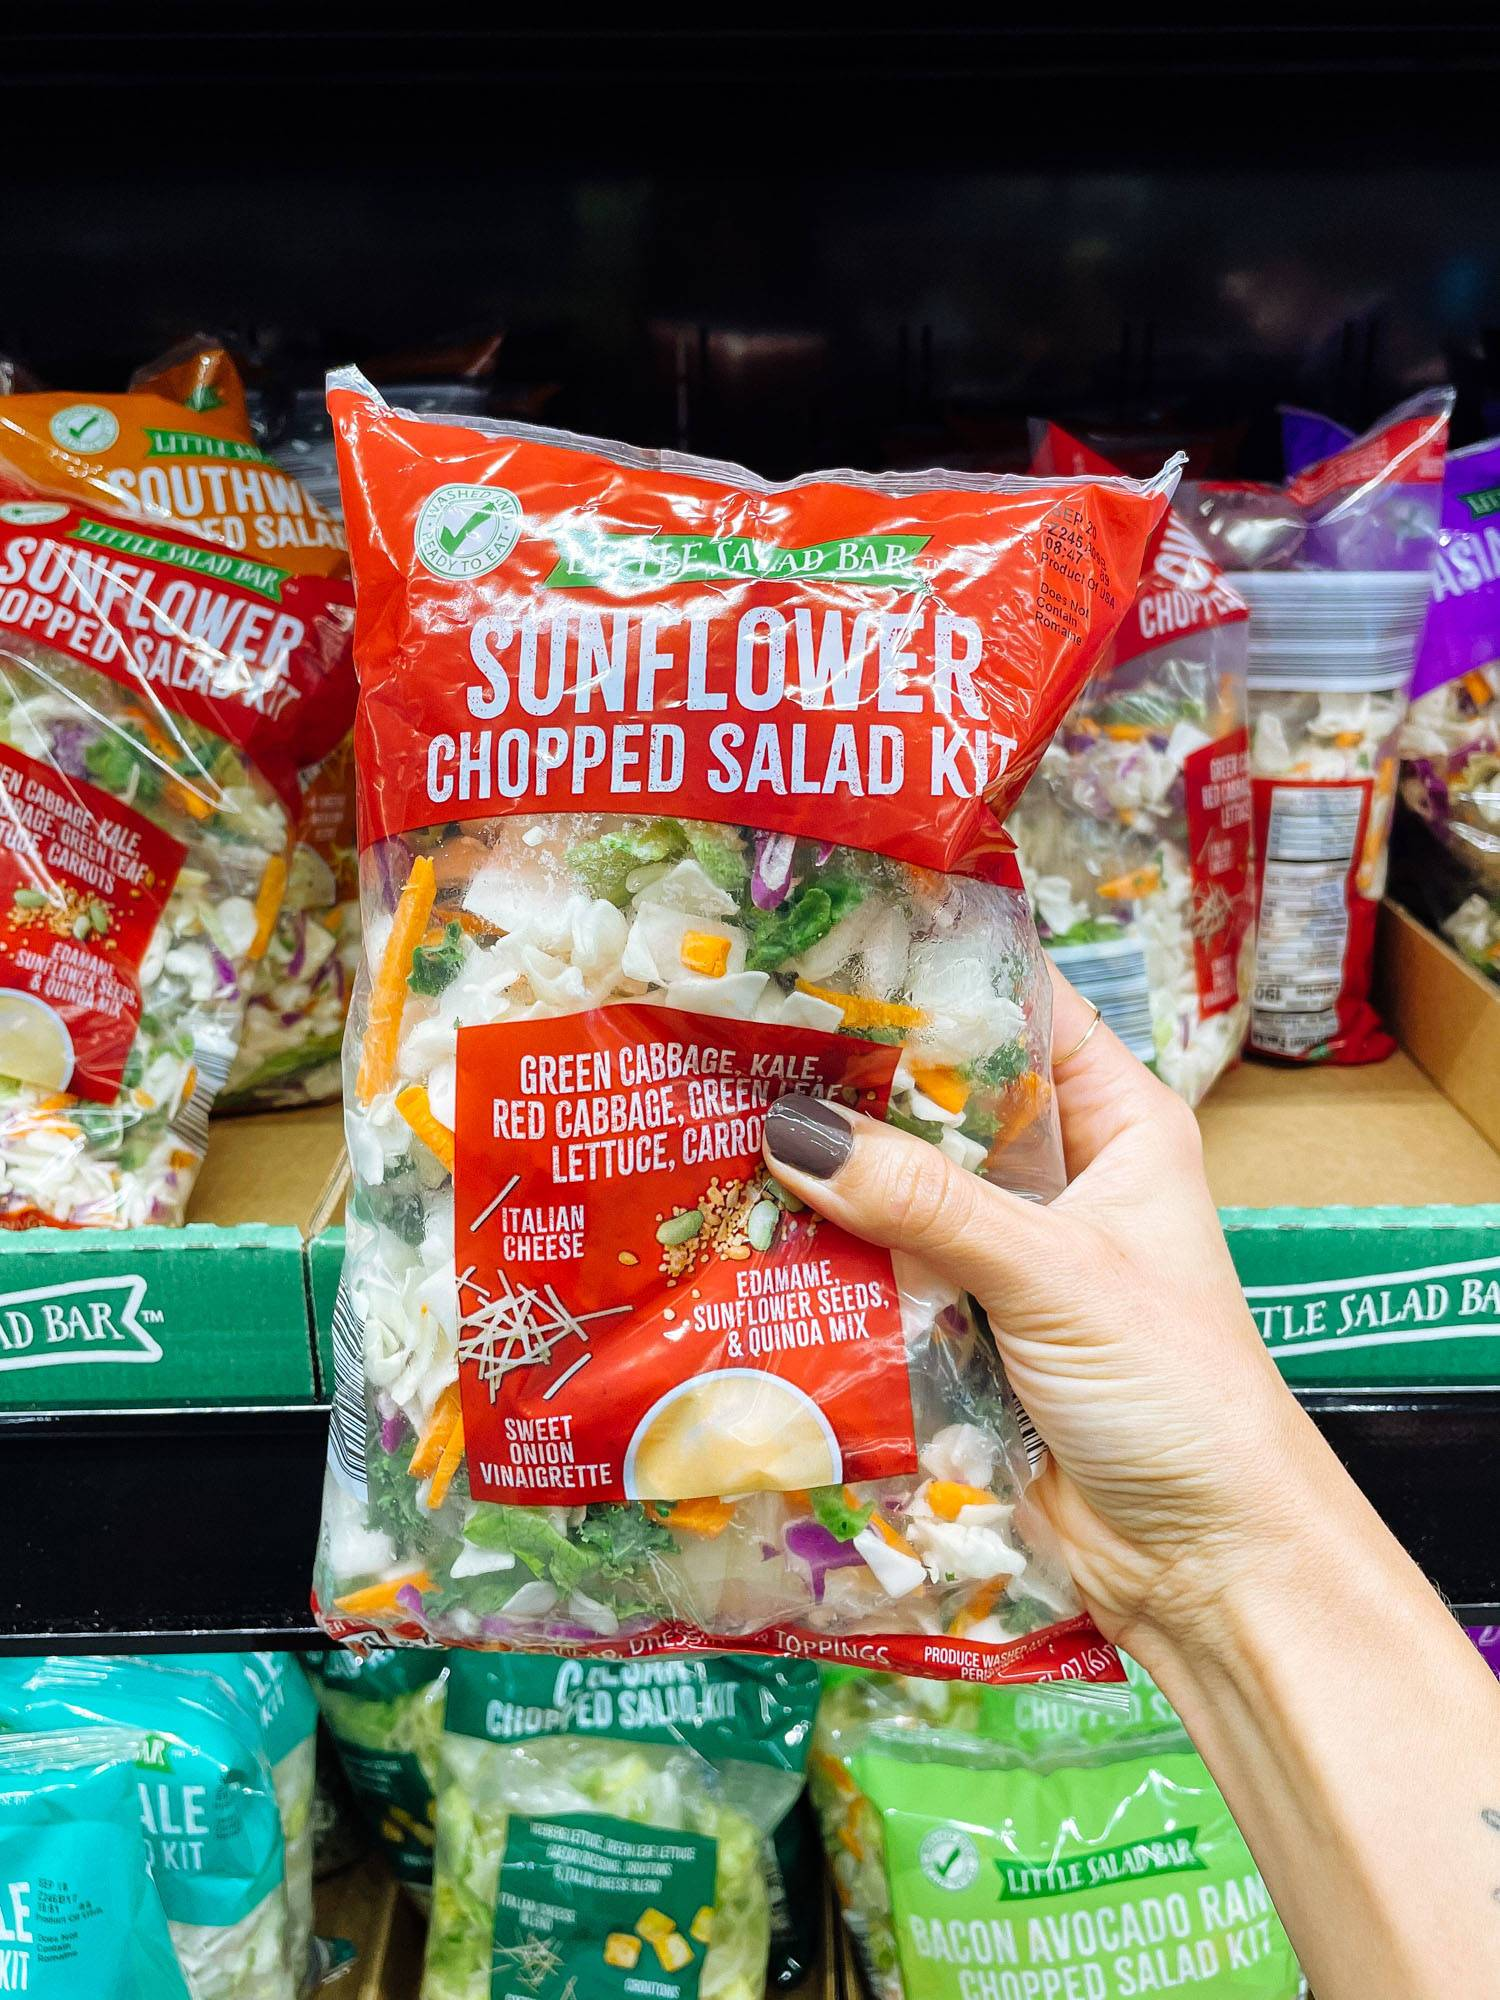 White hand holding a sunflower chopped salad kit from ALDI.